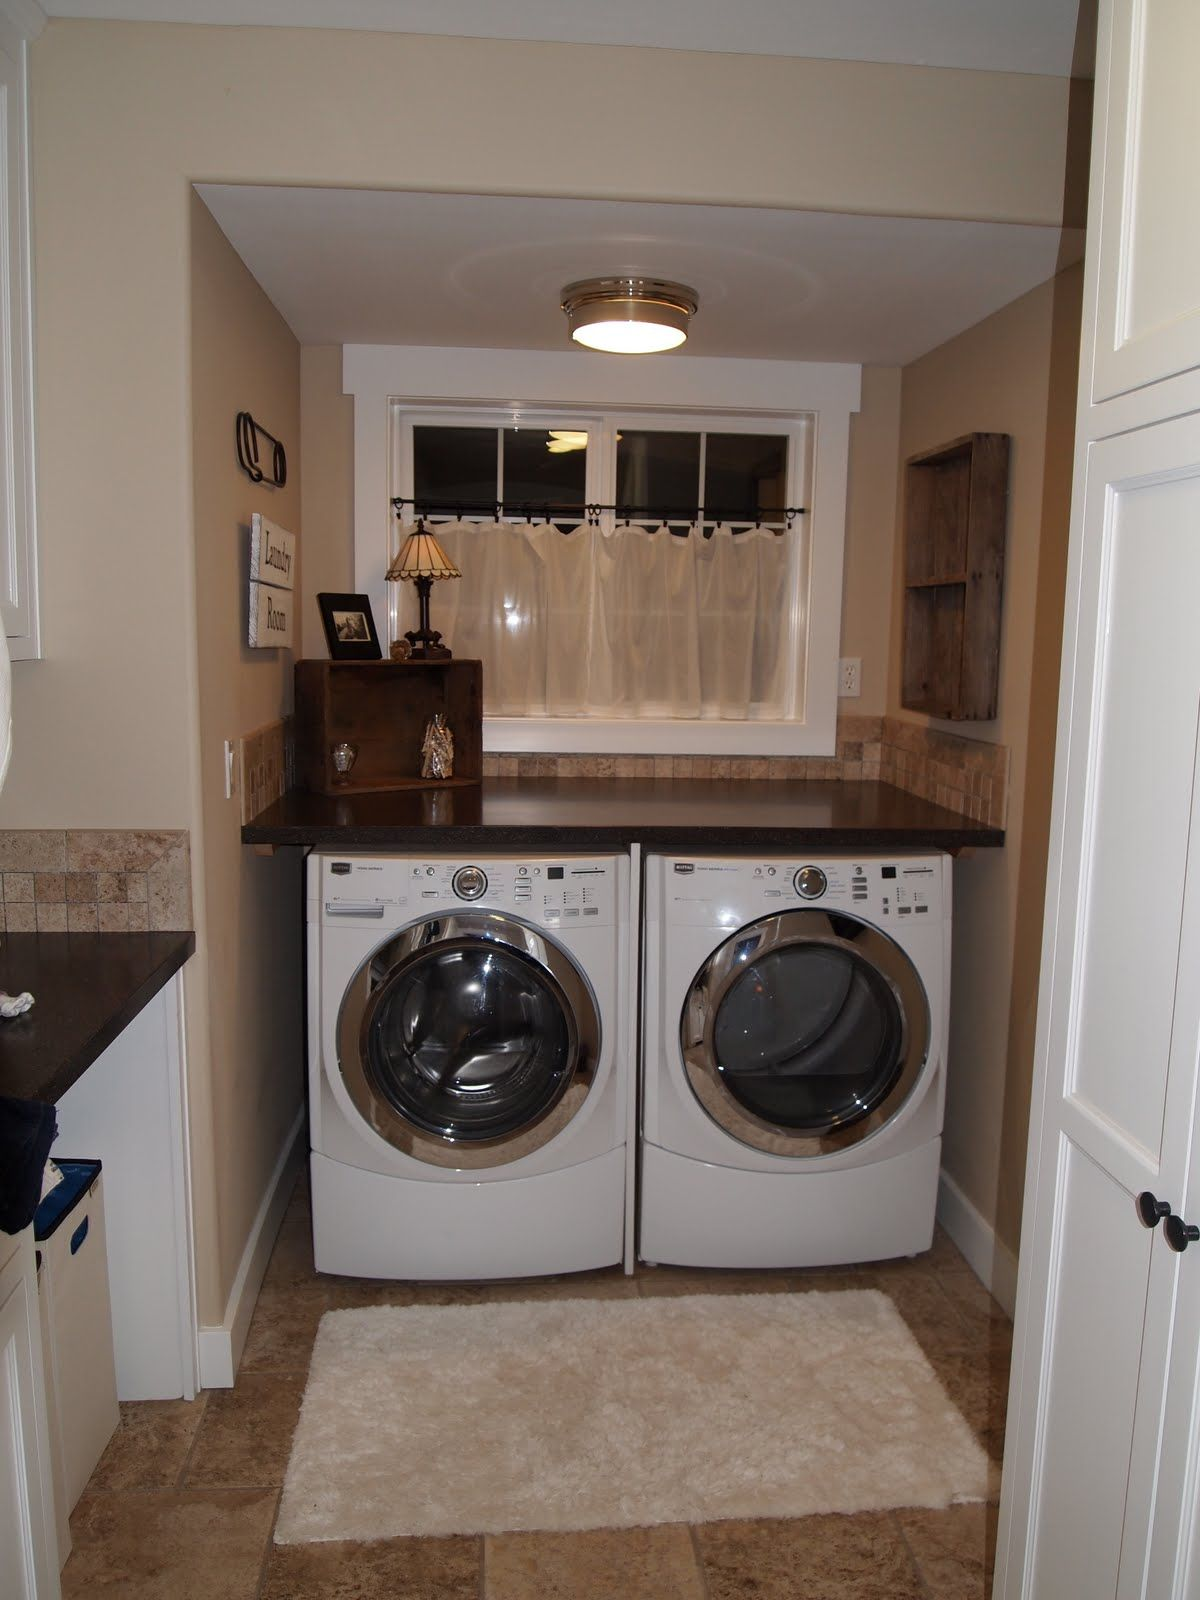 planning on putting a shelf over the washer and dryer in the new rh pinterest com